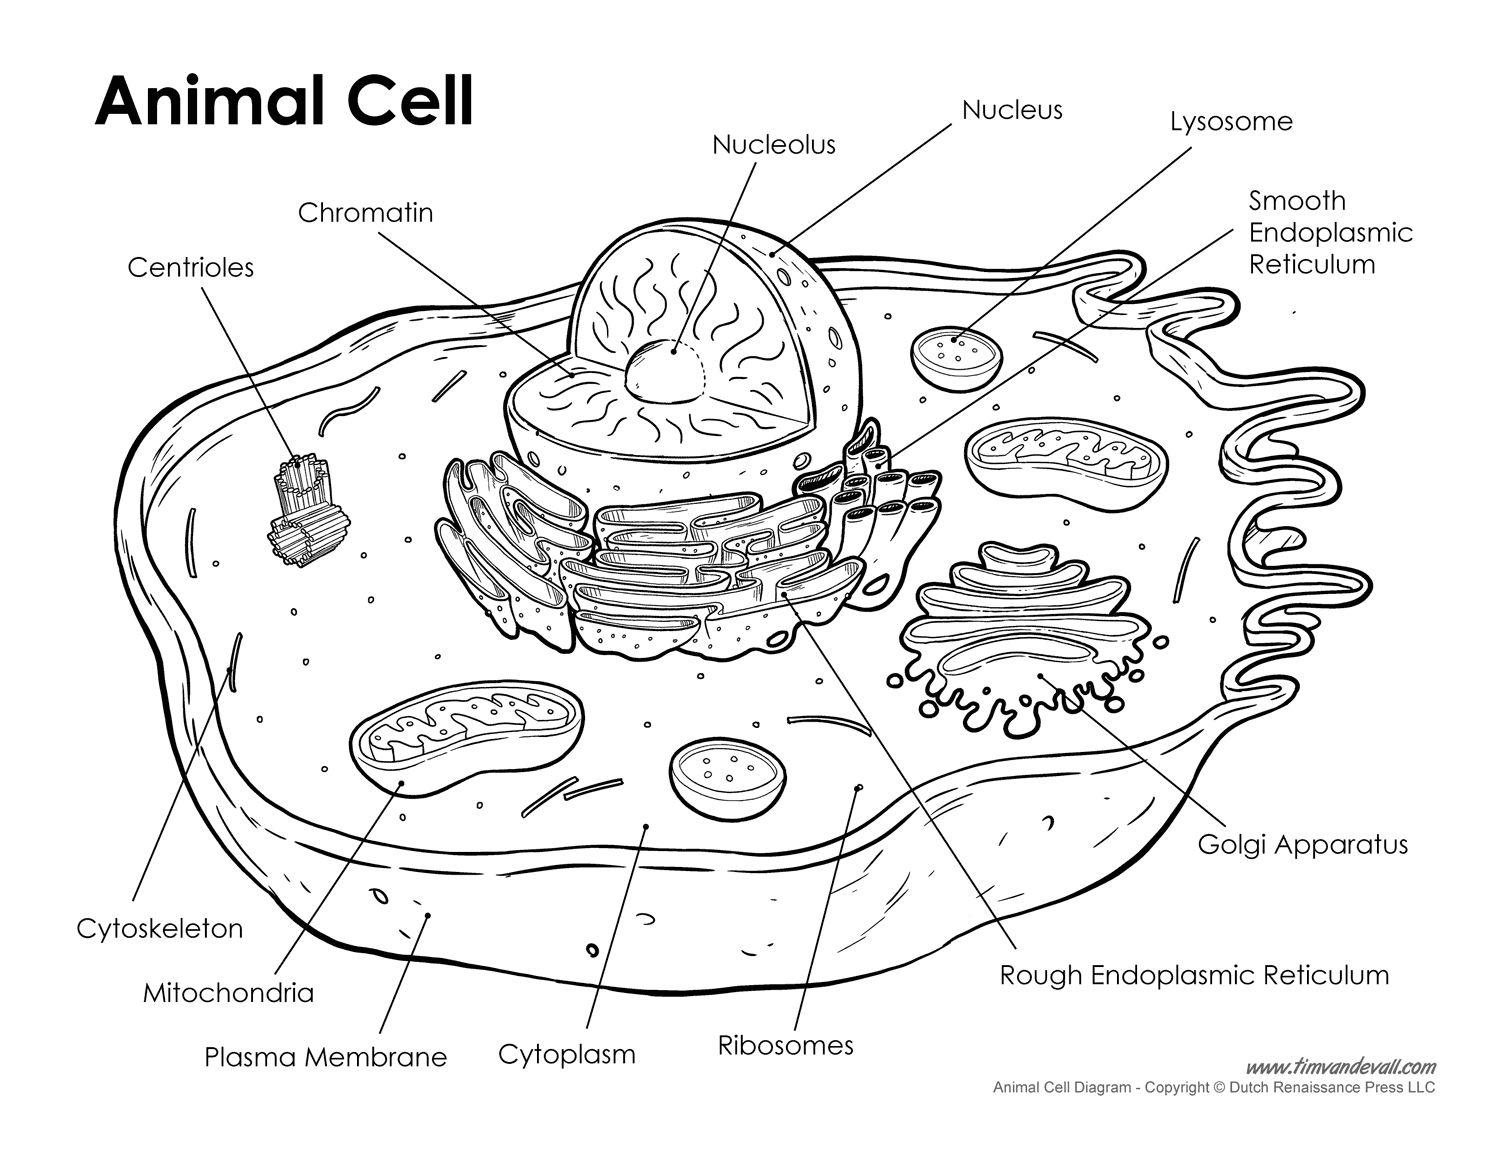 Animal Cell Sketch Animal Cell Drawing Labeled - Drawing ...